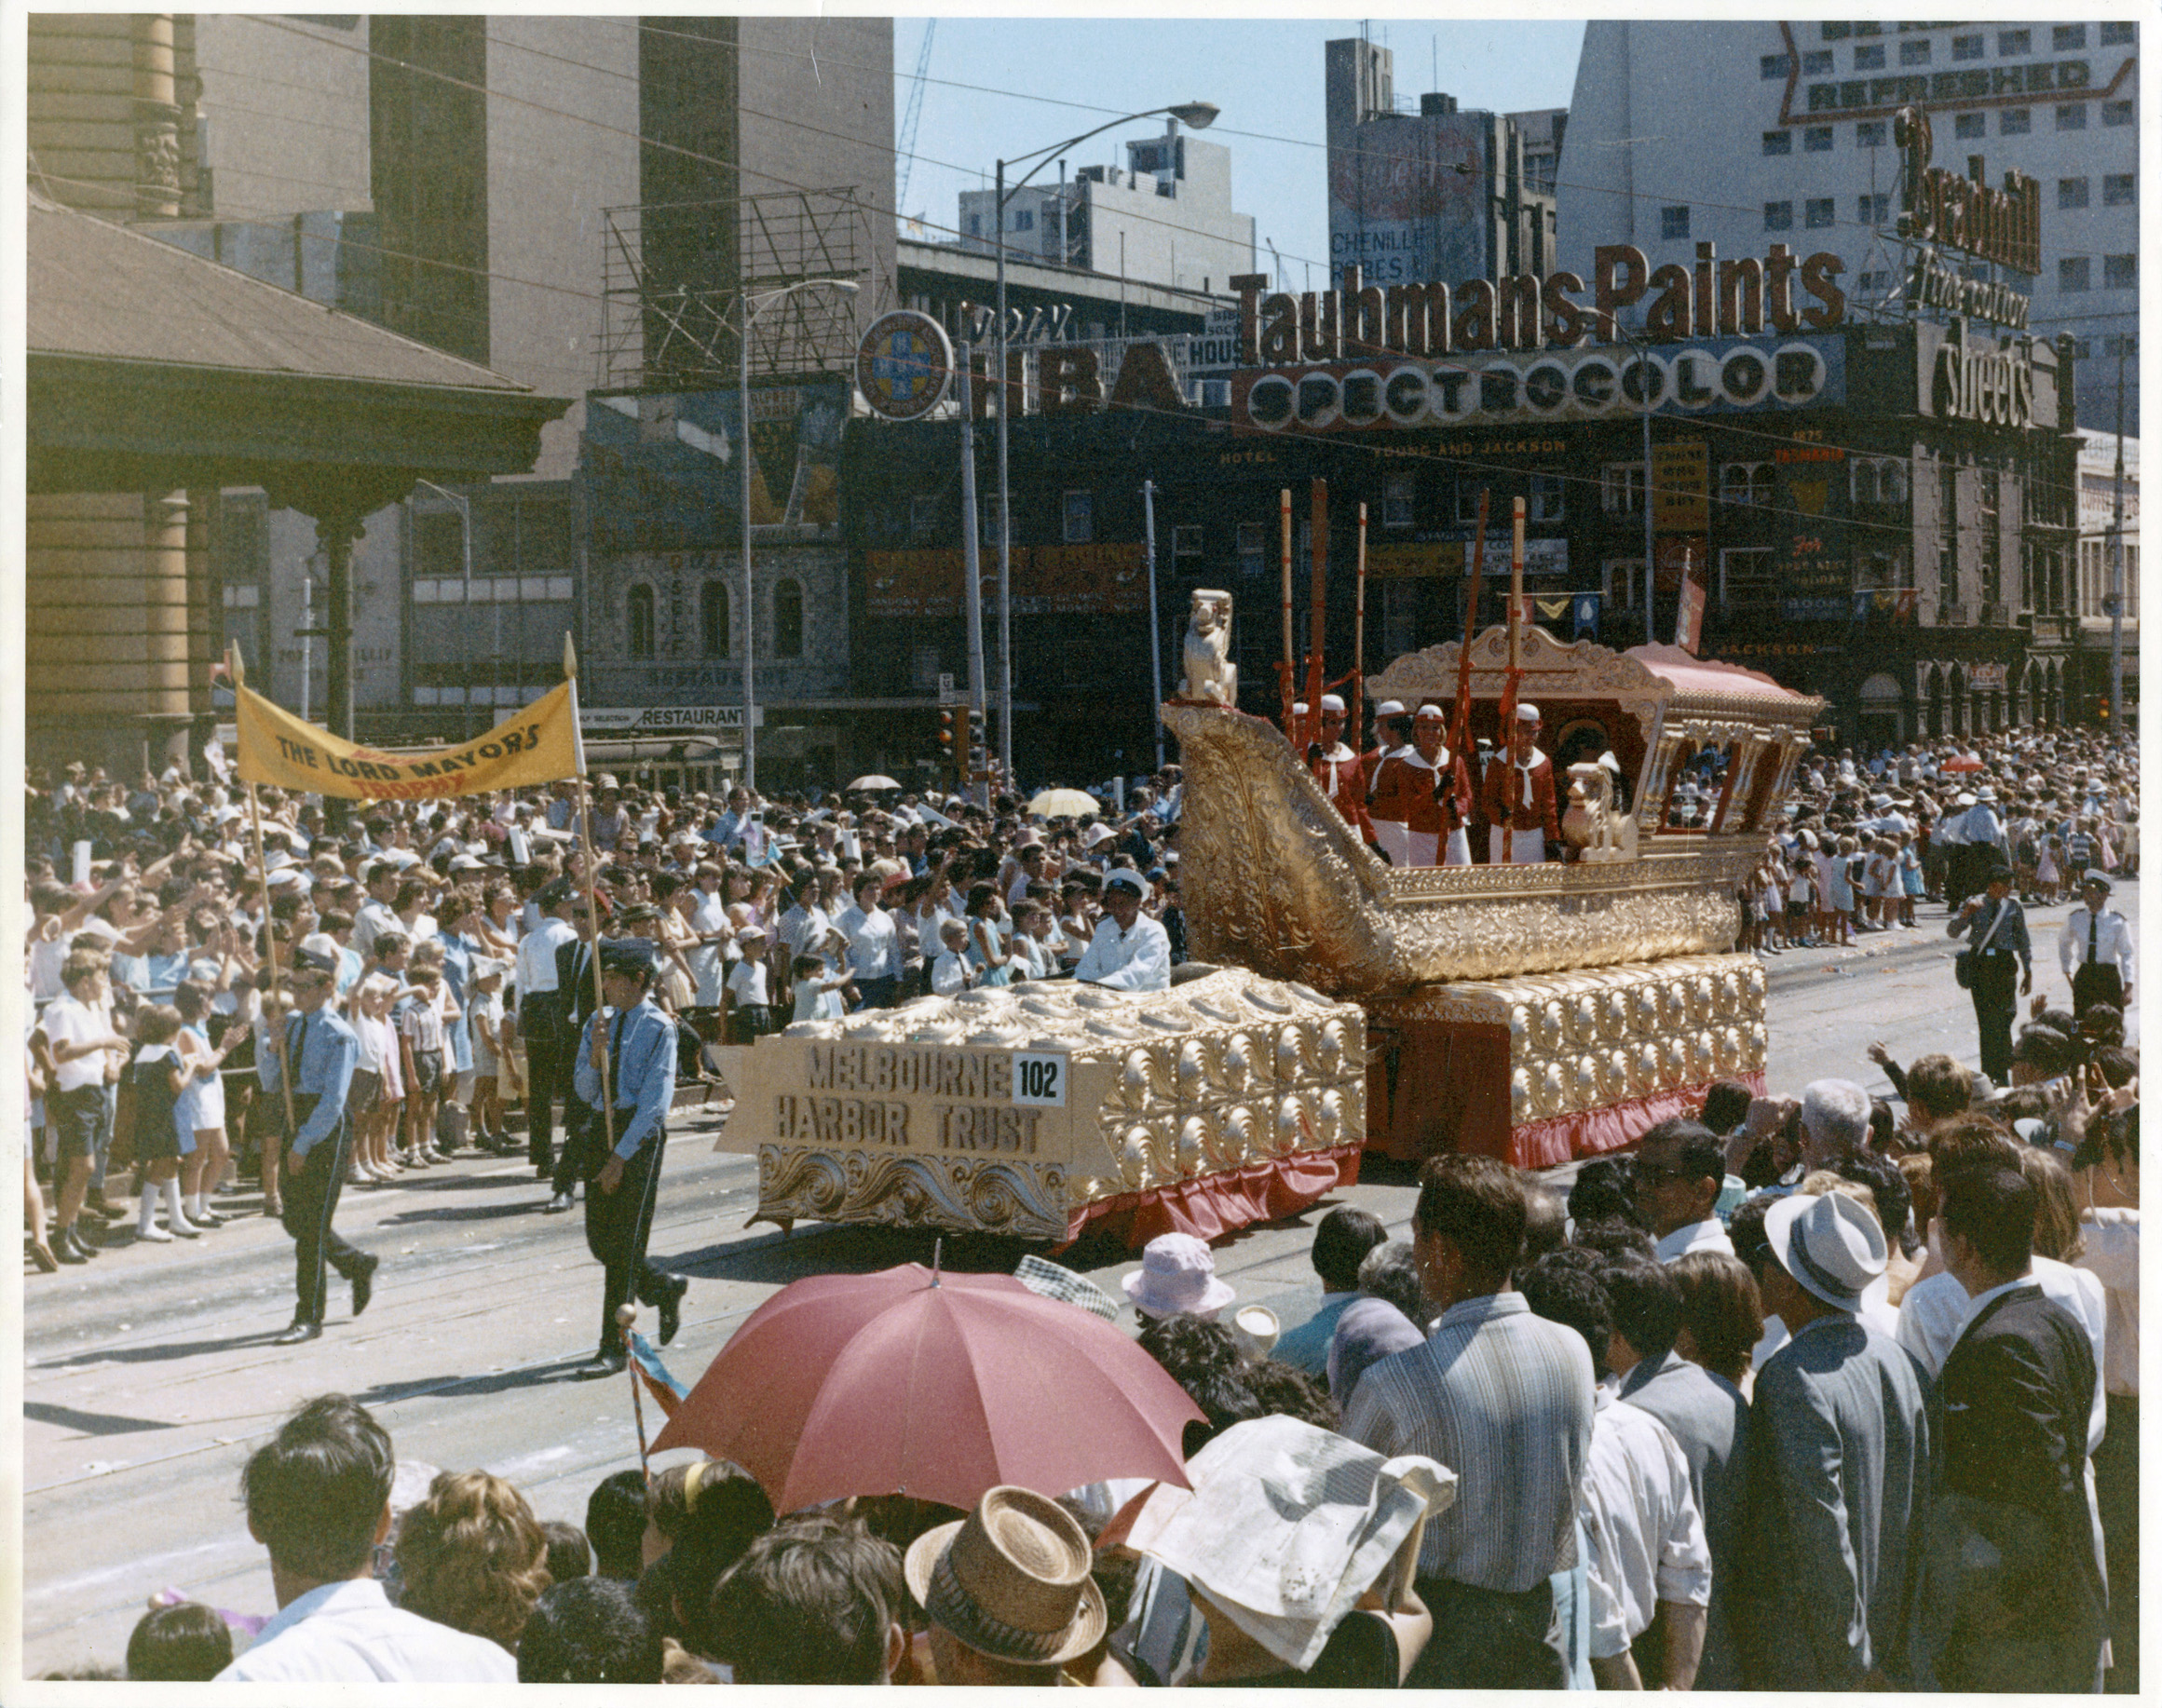 photo of gold Melbourne Harbour Trust float